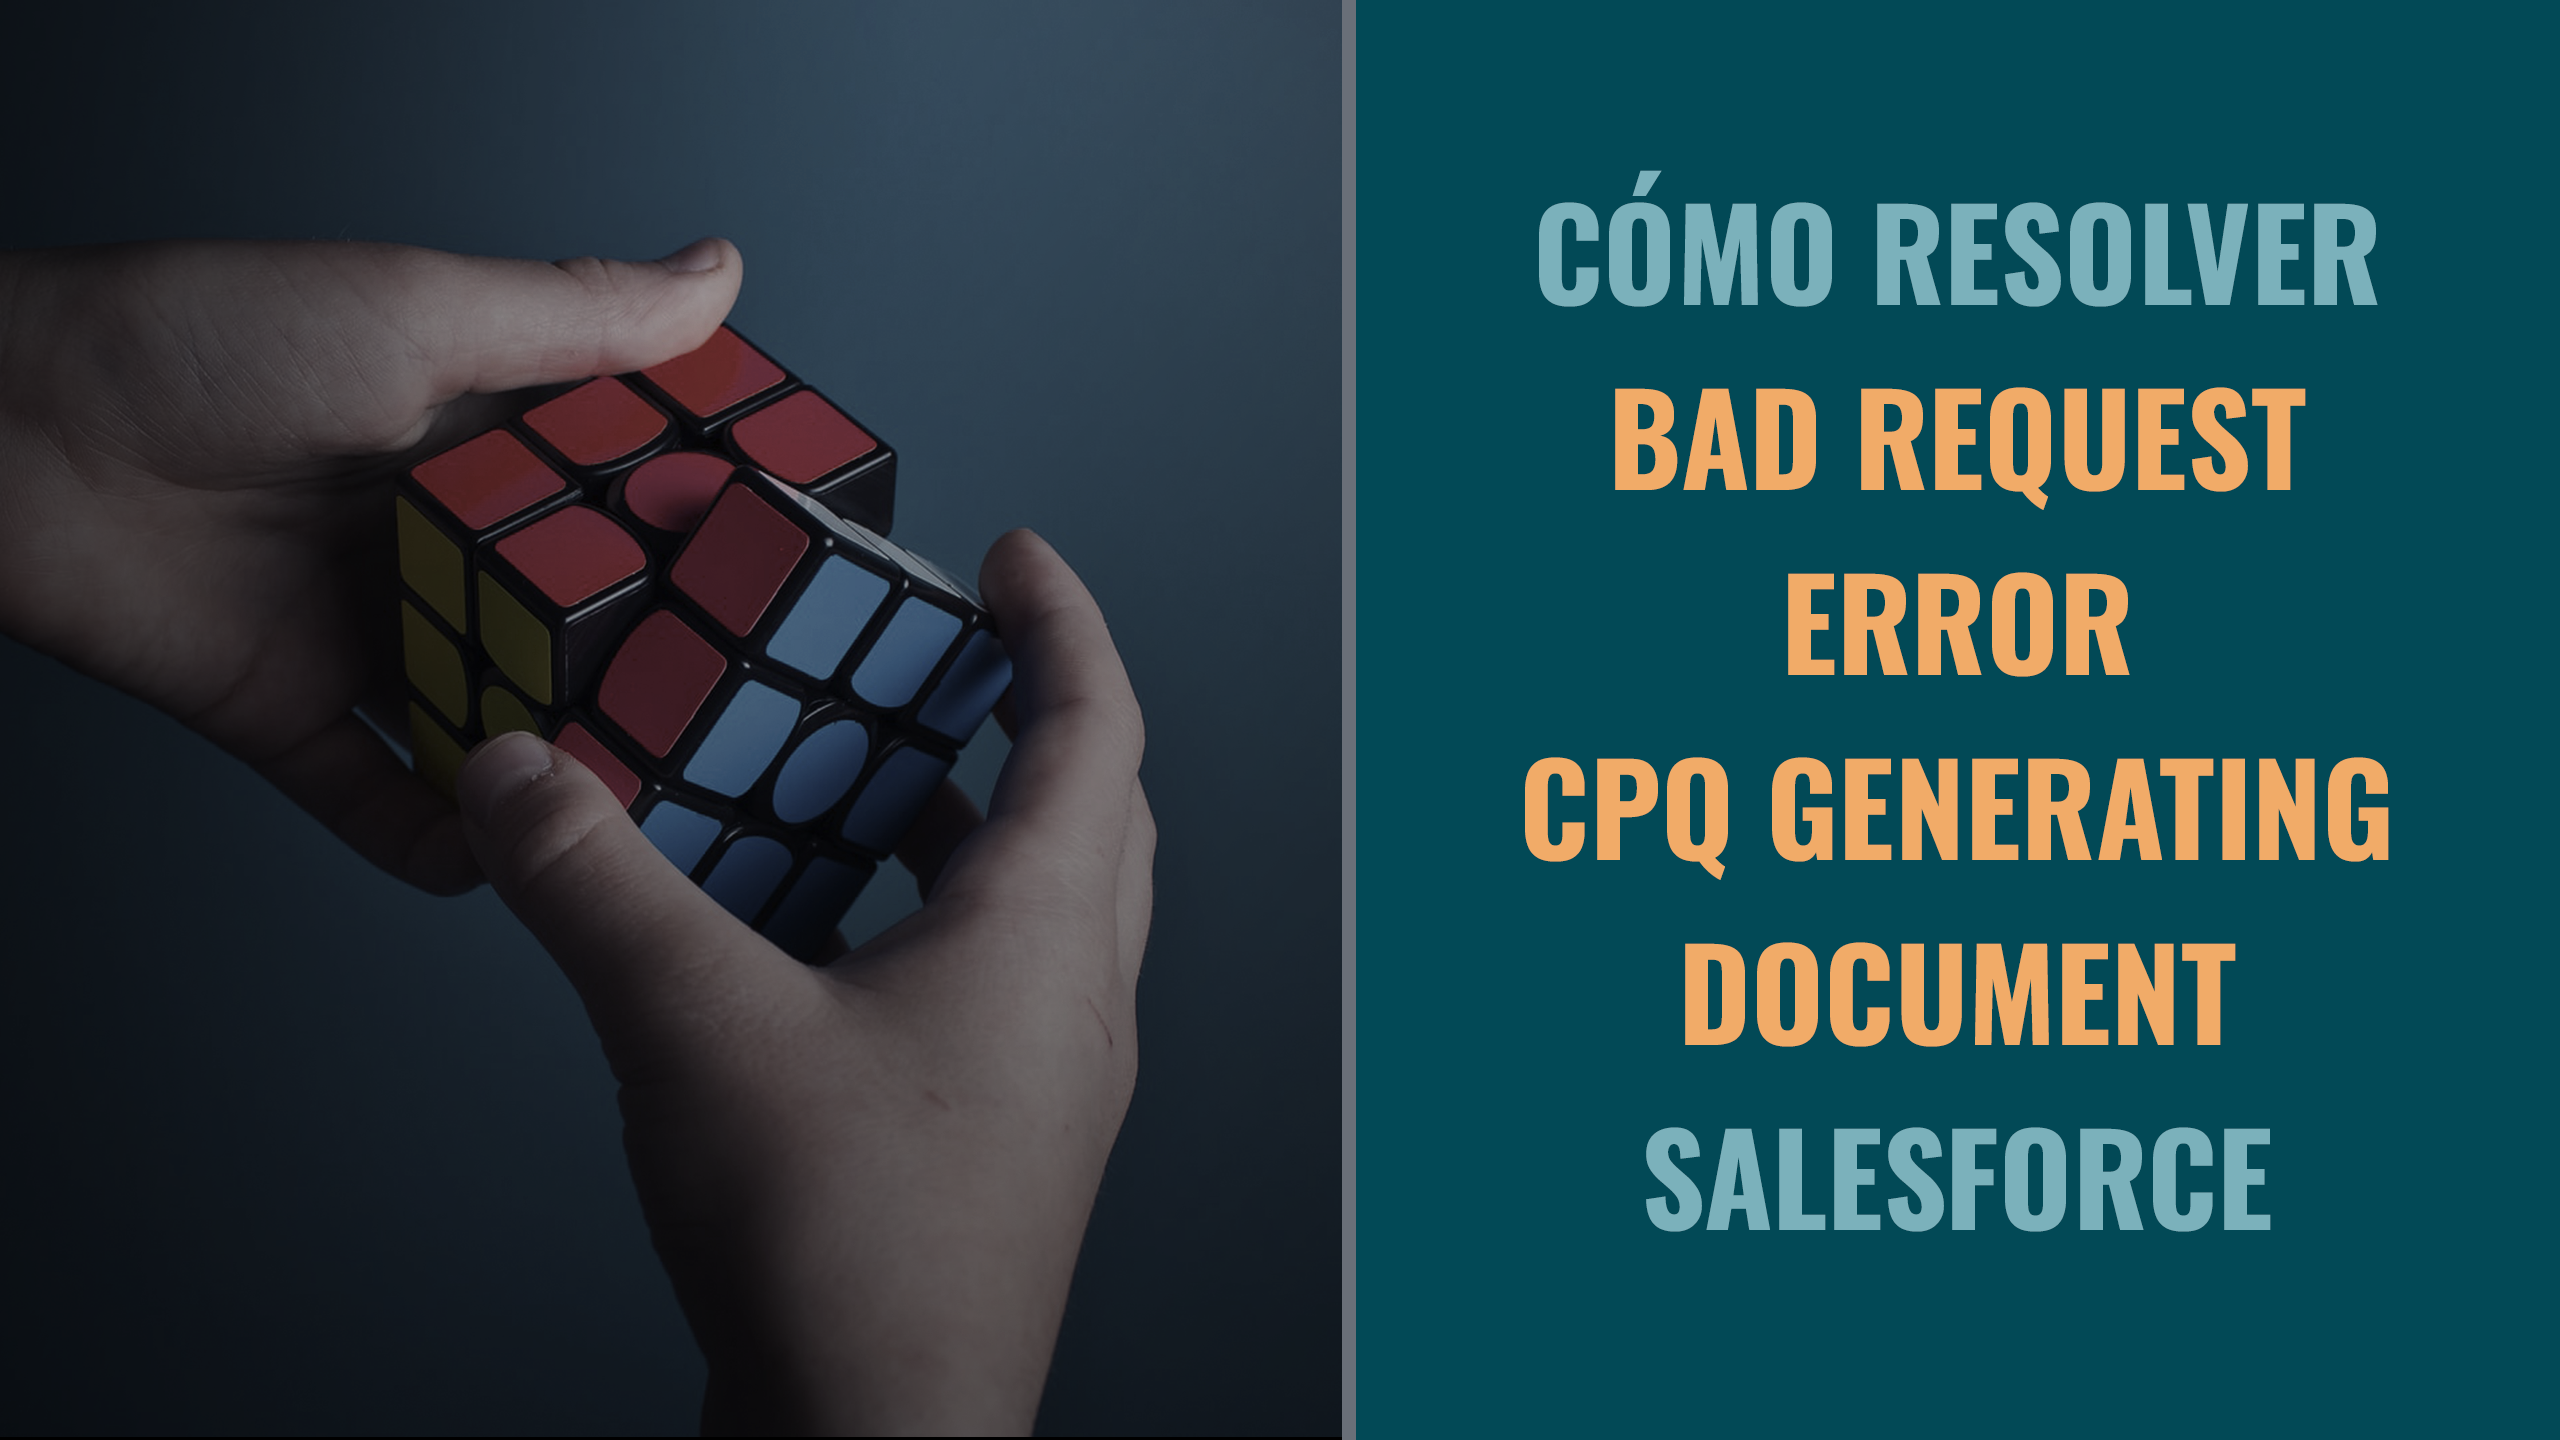 Como resolver Bad Request error CPQ